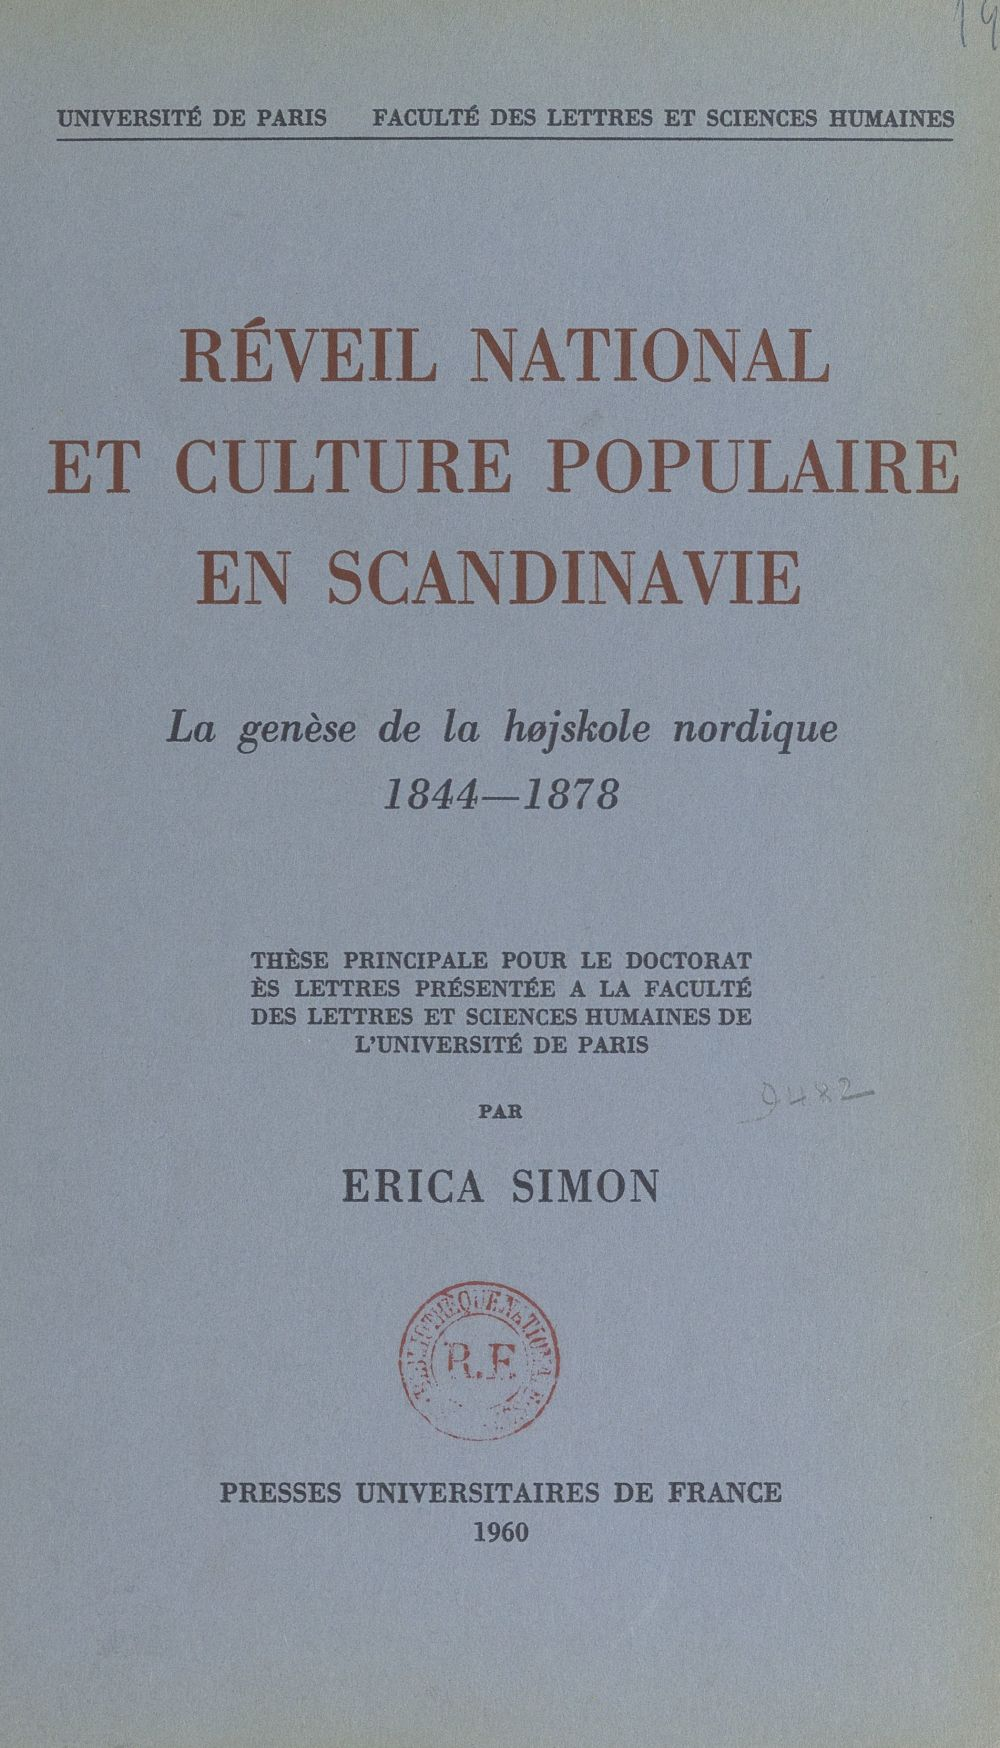 Réveil national et culture populaire en Scandinavie